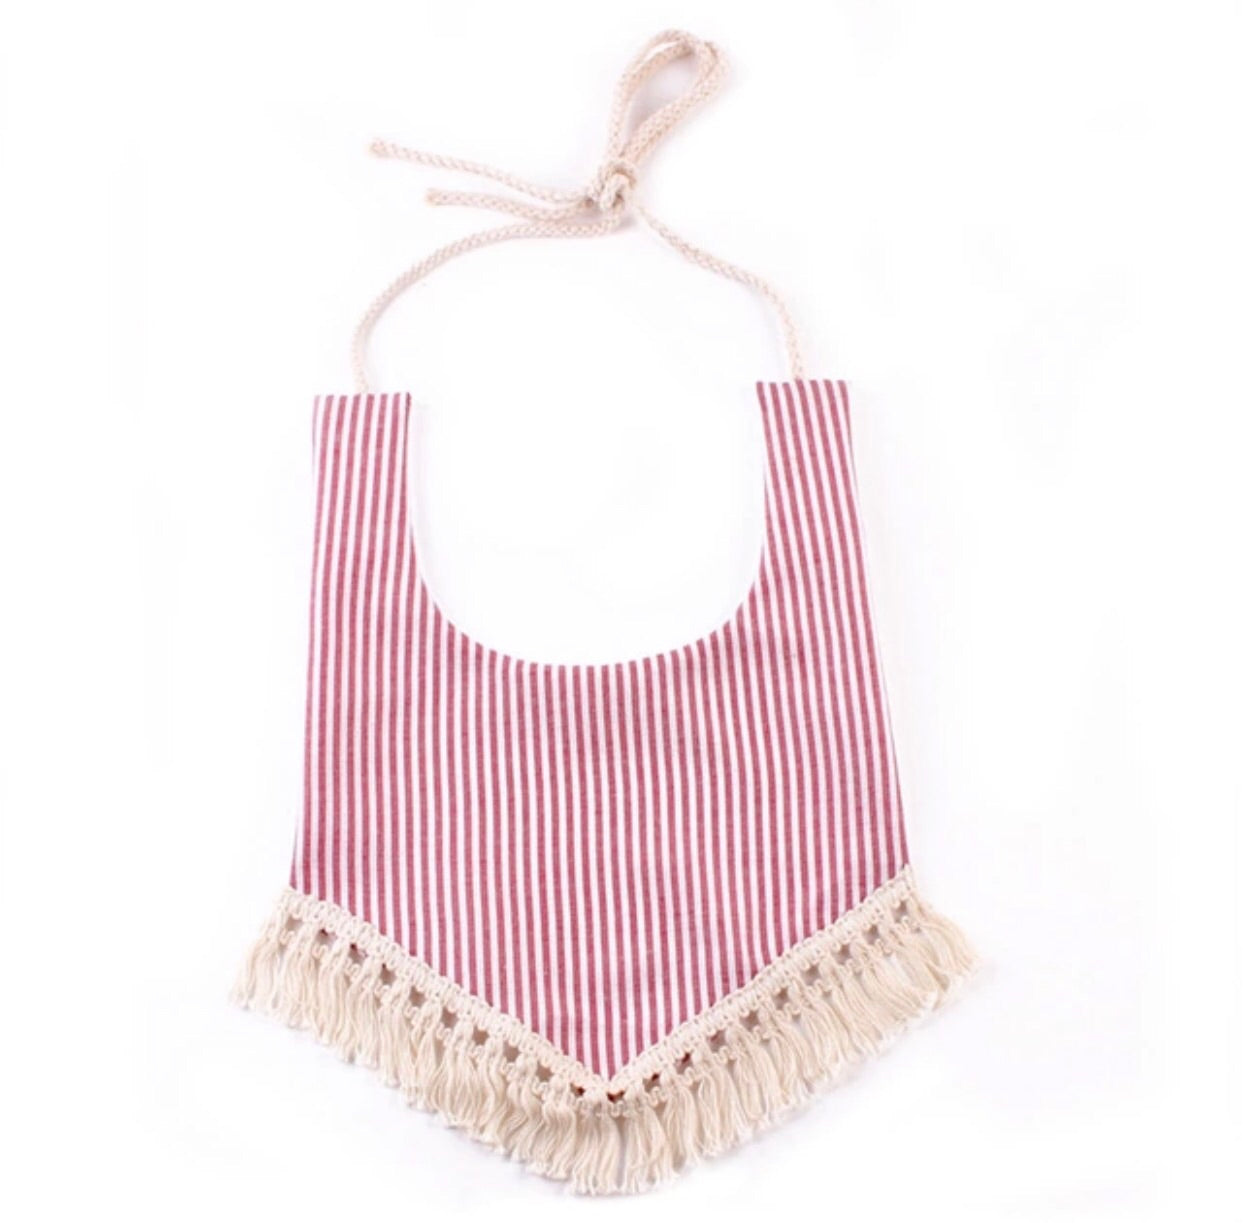 Boho Bib - Red Stripes